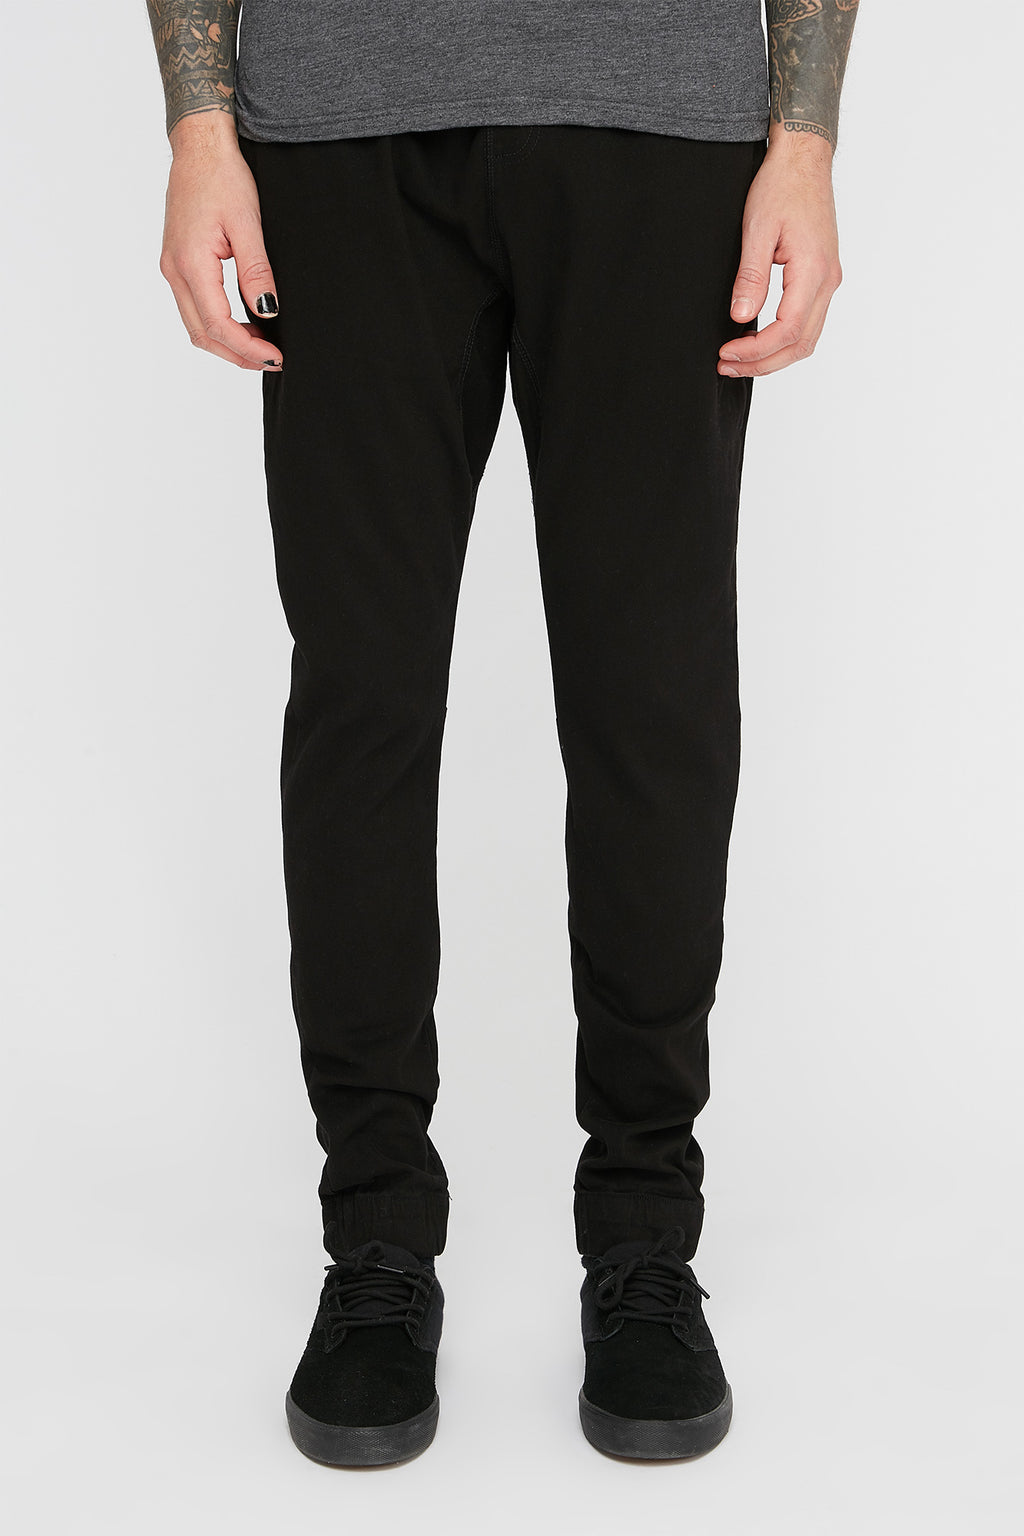 West49 Mens Twill Jogger